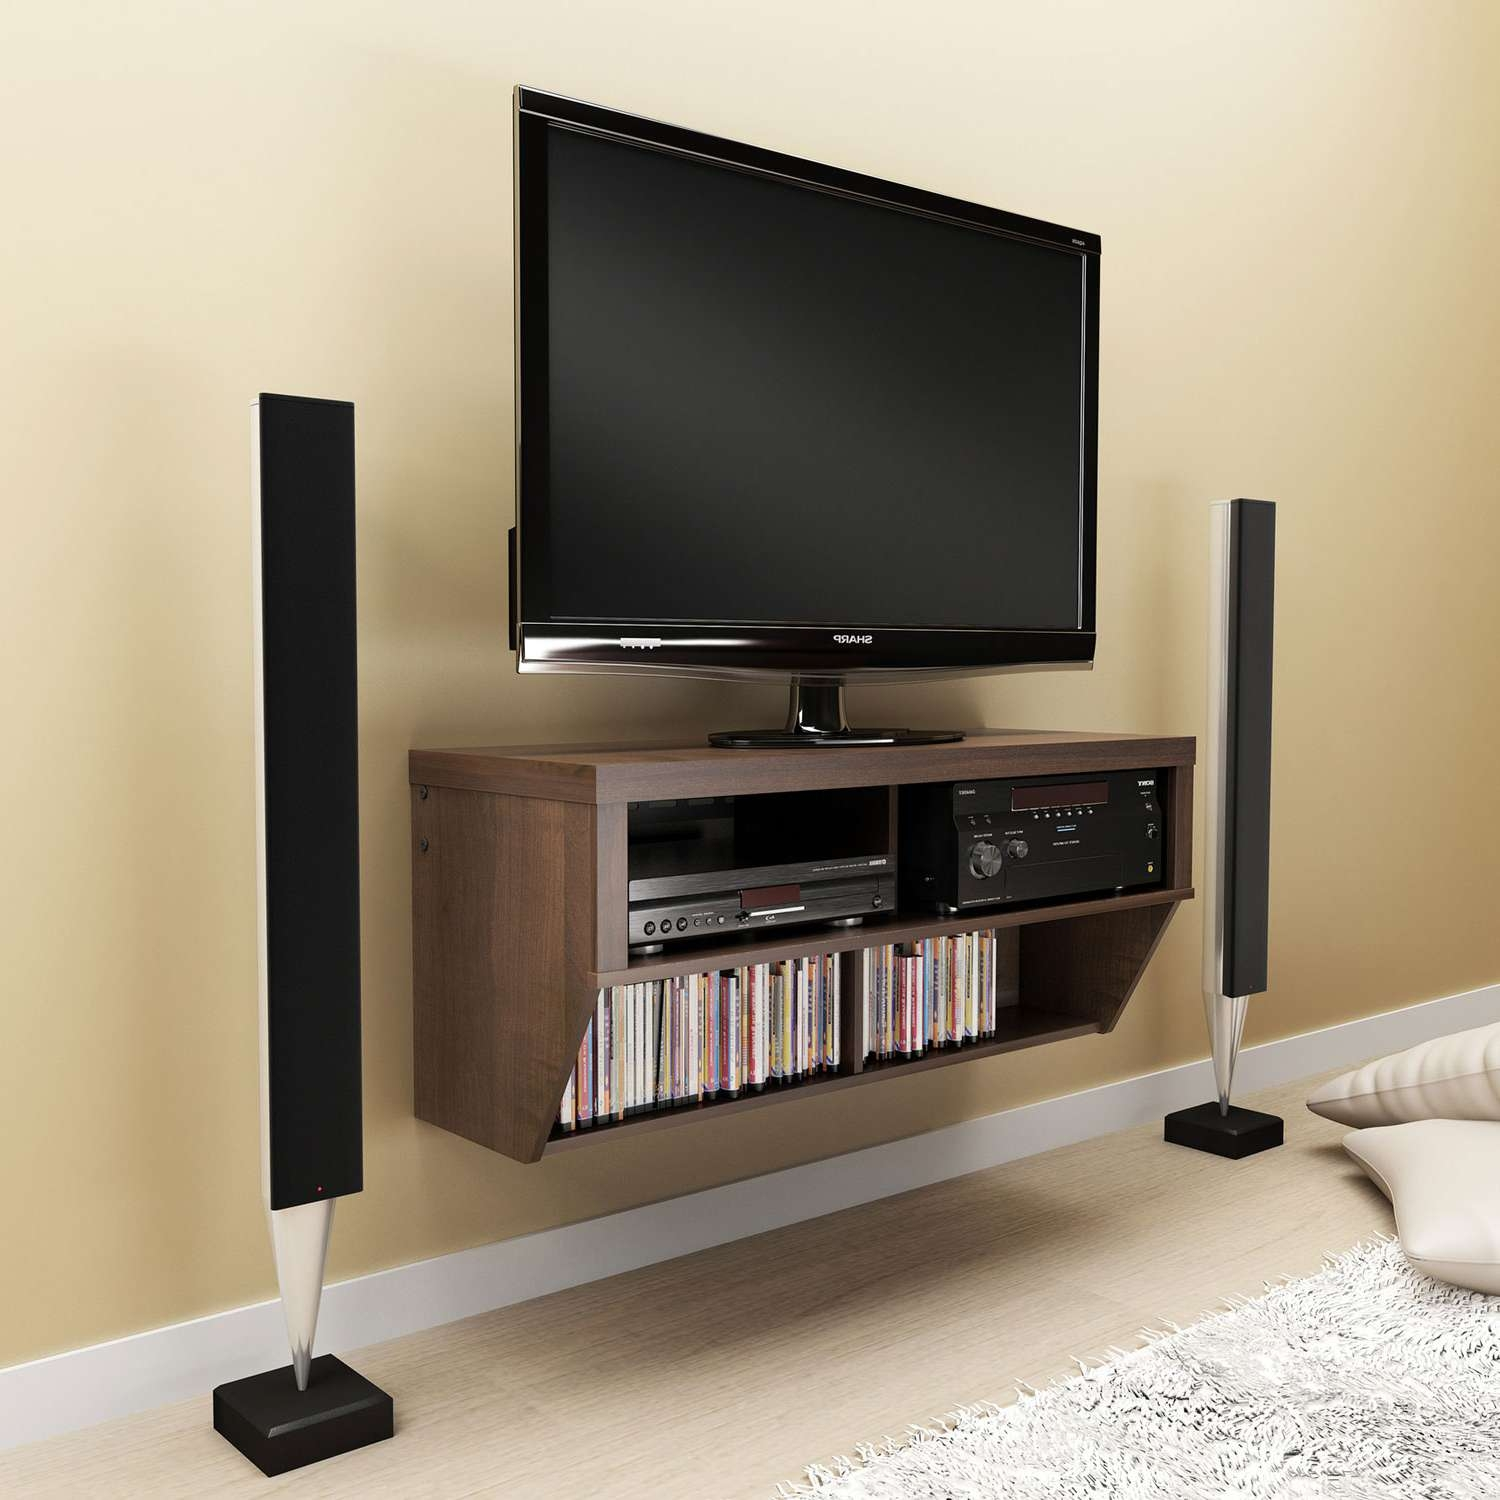 Engrossing Wooden Lcd Tv Cabinet Designs Tags : Led Tv Cabinets With 24 Inch Led Tv Stands (View 3 of 15)